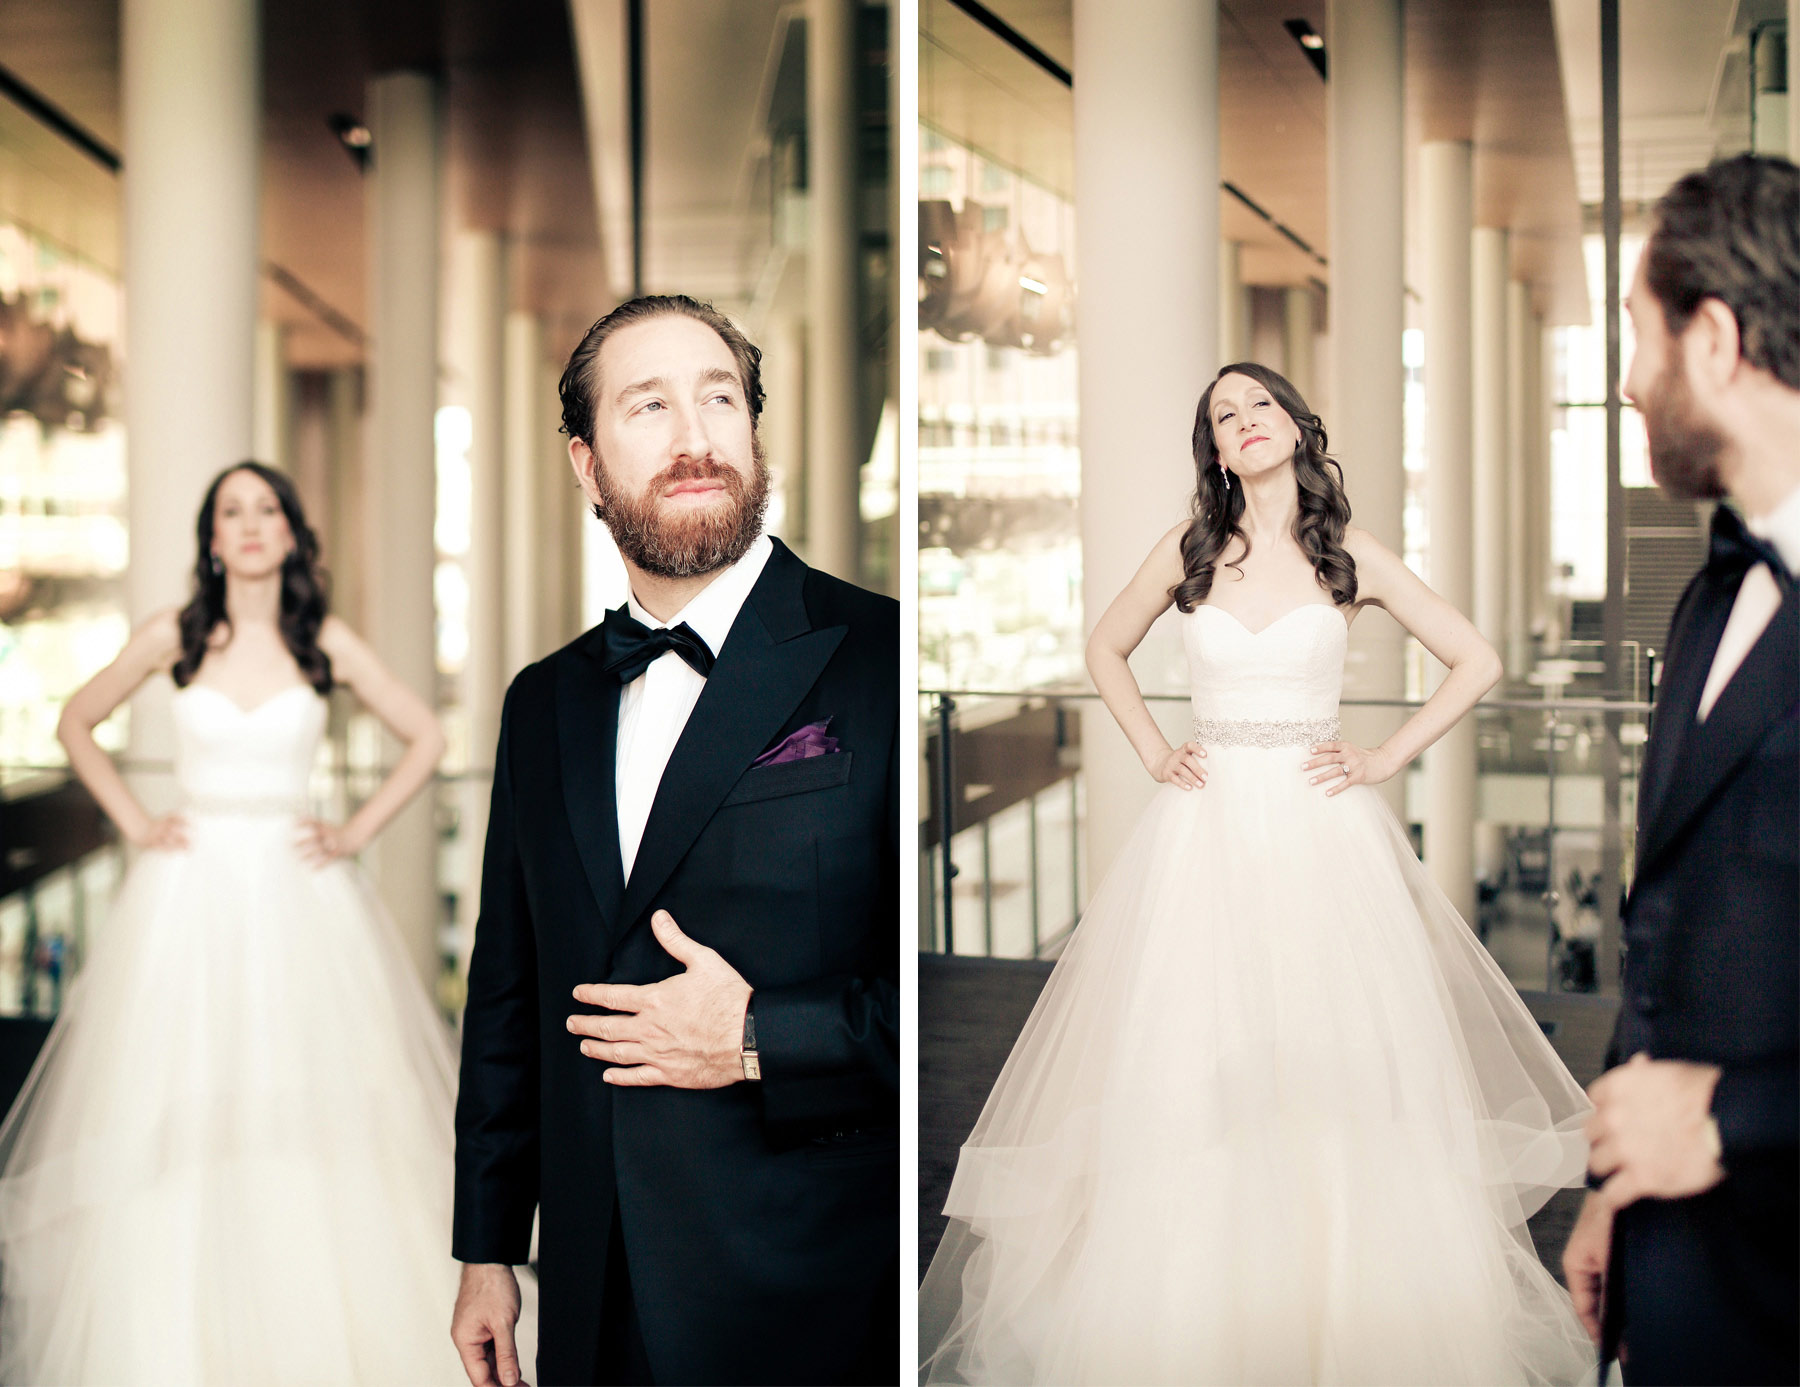 05-Minneapolis-Minnesota-Wedding-Photography-by-Vick-Photography-Hilton-Downtown-First-Look-Vintage-Lisa-and-Jared.jpg